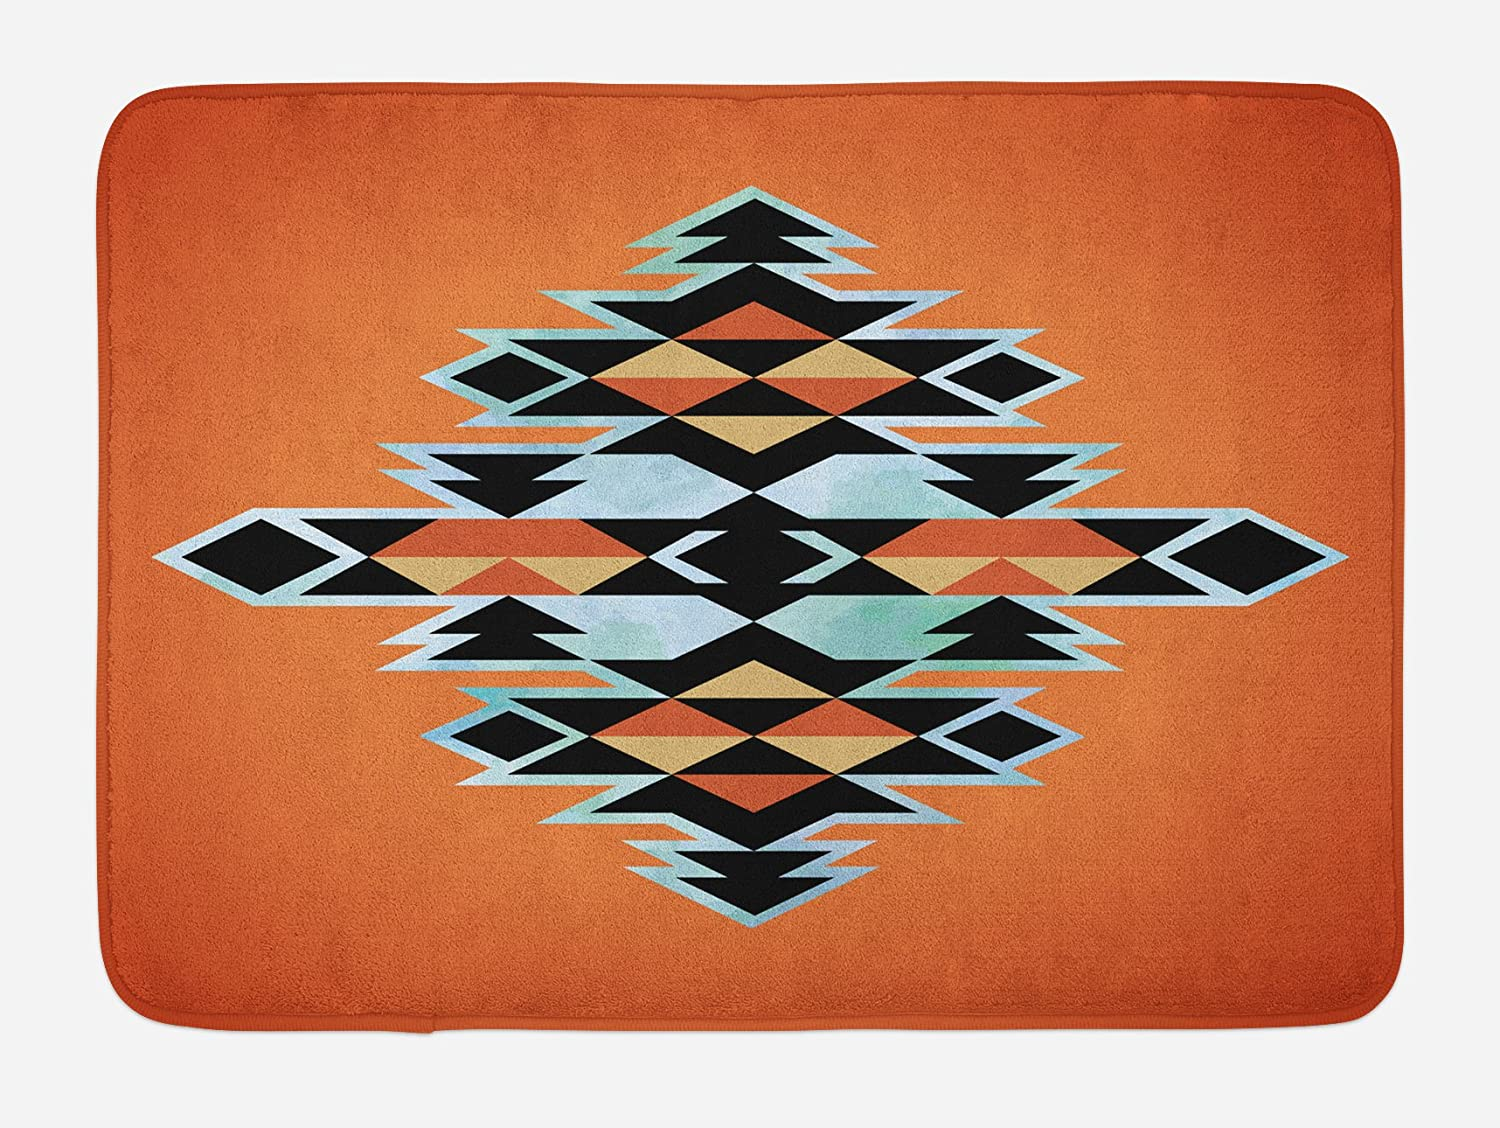 Ambesonne Tribal Bath Mat, Pattern Abstract Design Traditional Elements Print, Plush Bathroom Decor Mat with Non Slip Backing, 29.5